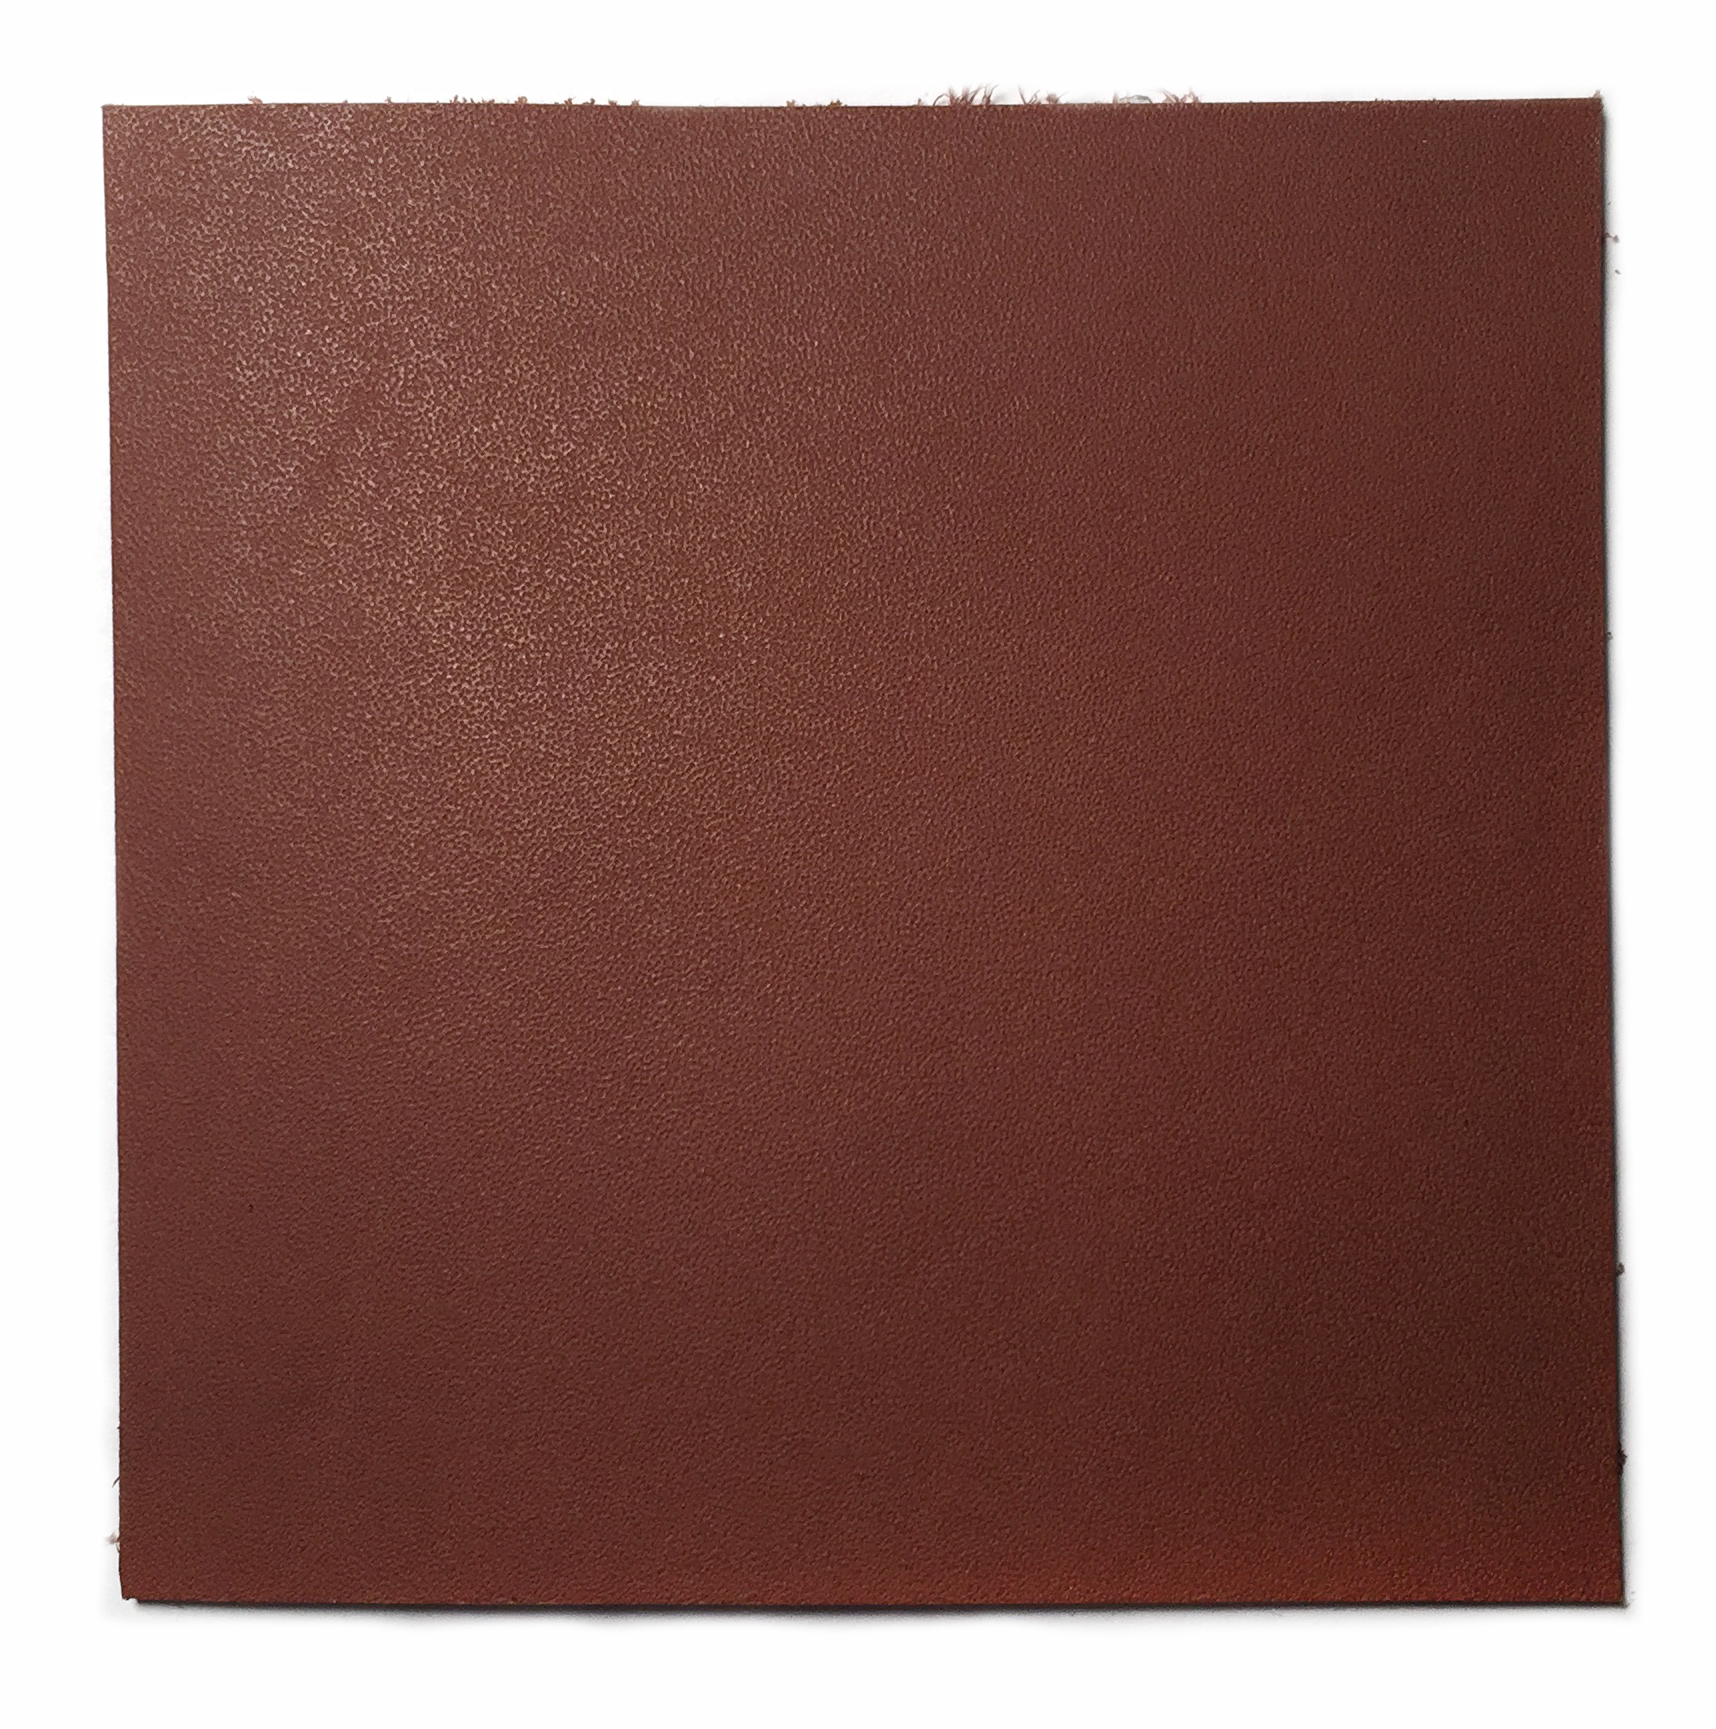 Leather_BritishTan2.jpg